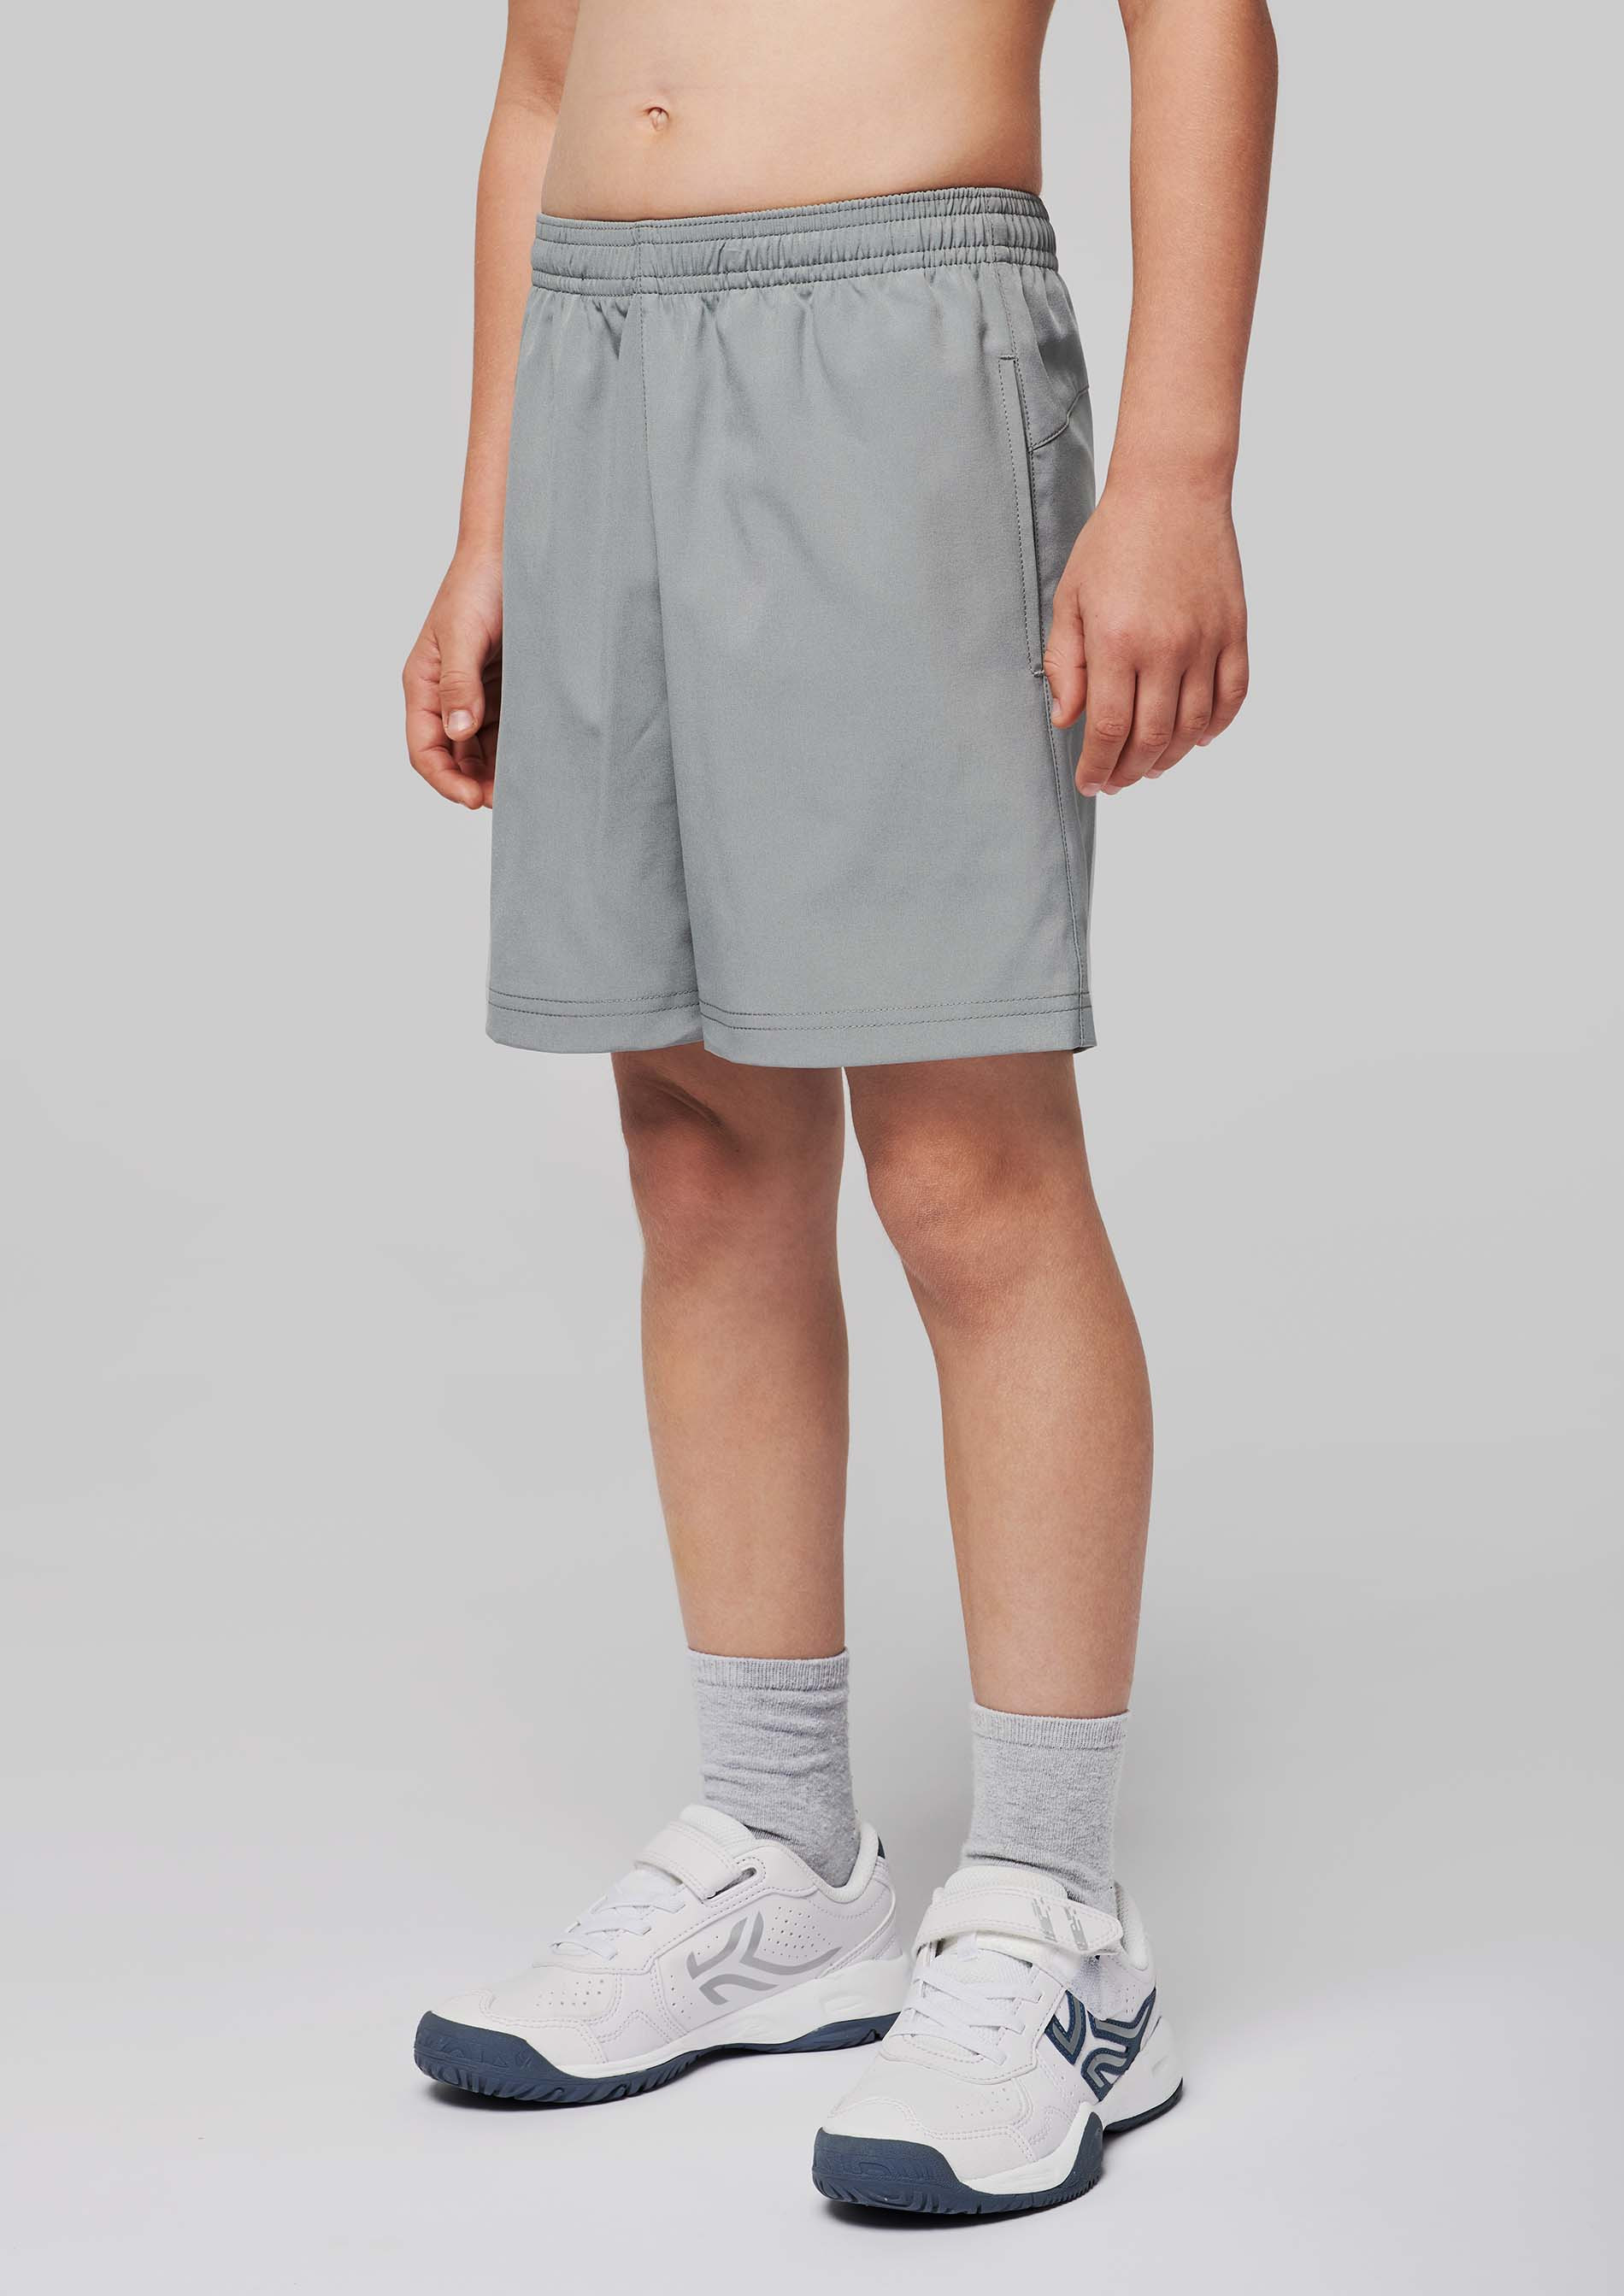 Proact Short performance enfant